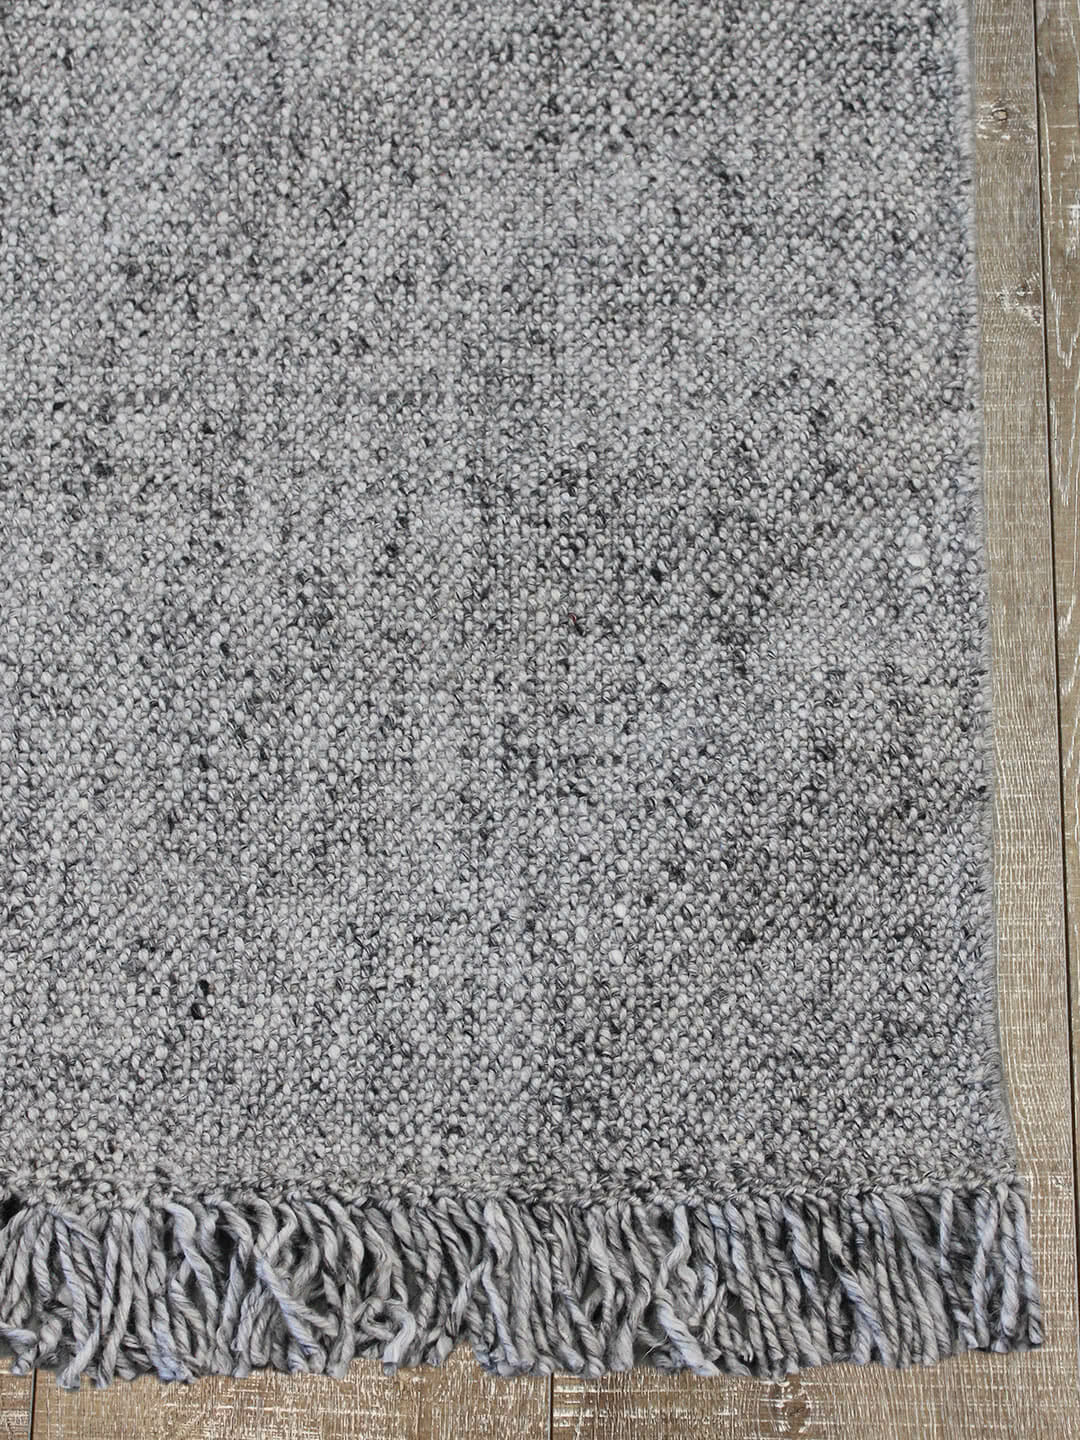 indian-textured-rug-100-percent-hand-woven-wool